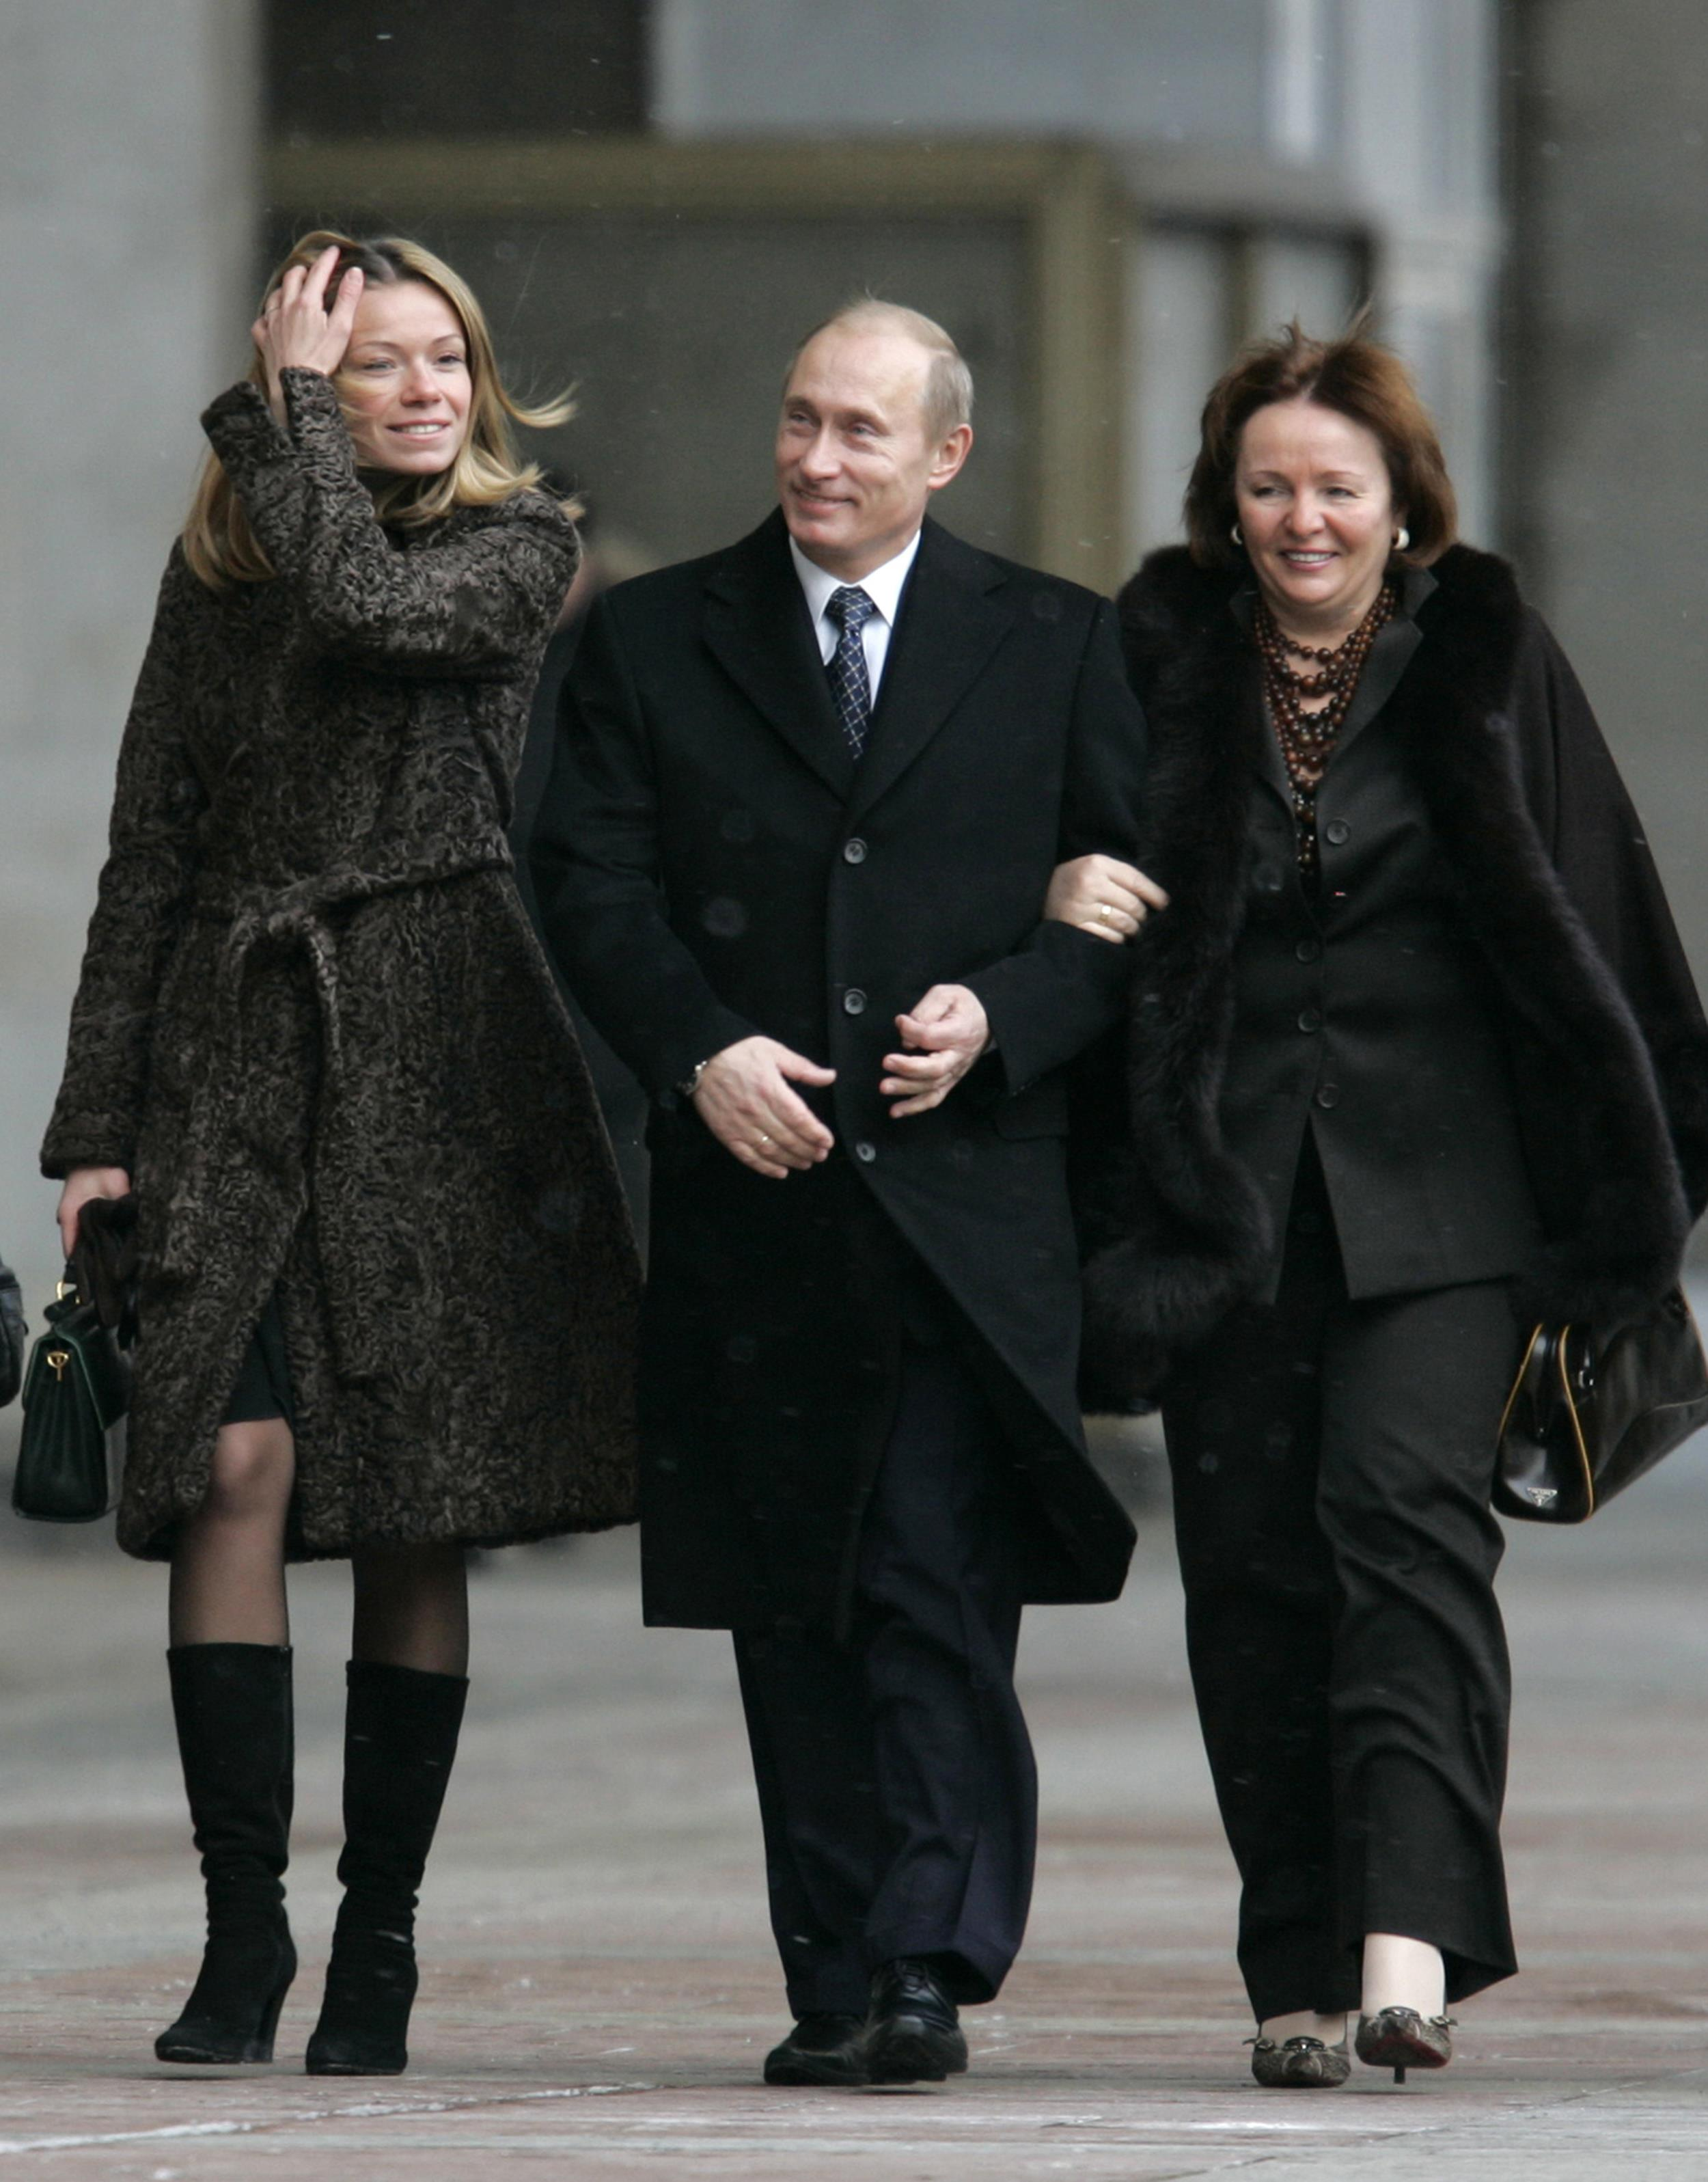 Image: Russian President Vladimir Putin, daughter Maria, left, and his wife Lyudmila, right, walk to a polling station in Moscow, on Dec. 2, 2007.